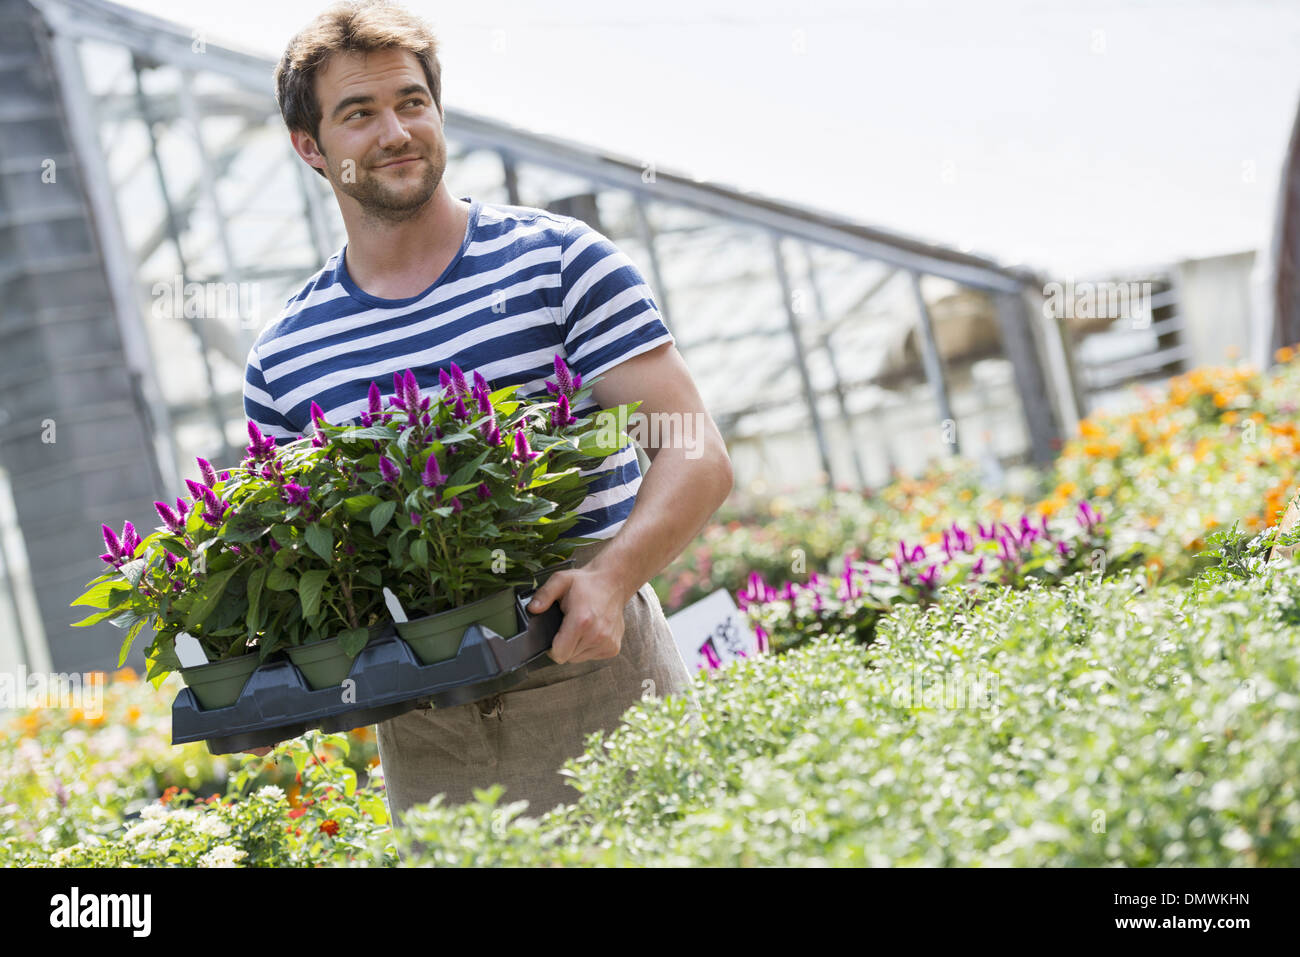 A man working in an organic nursery greenhouse. - Stock Image